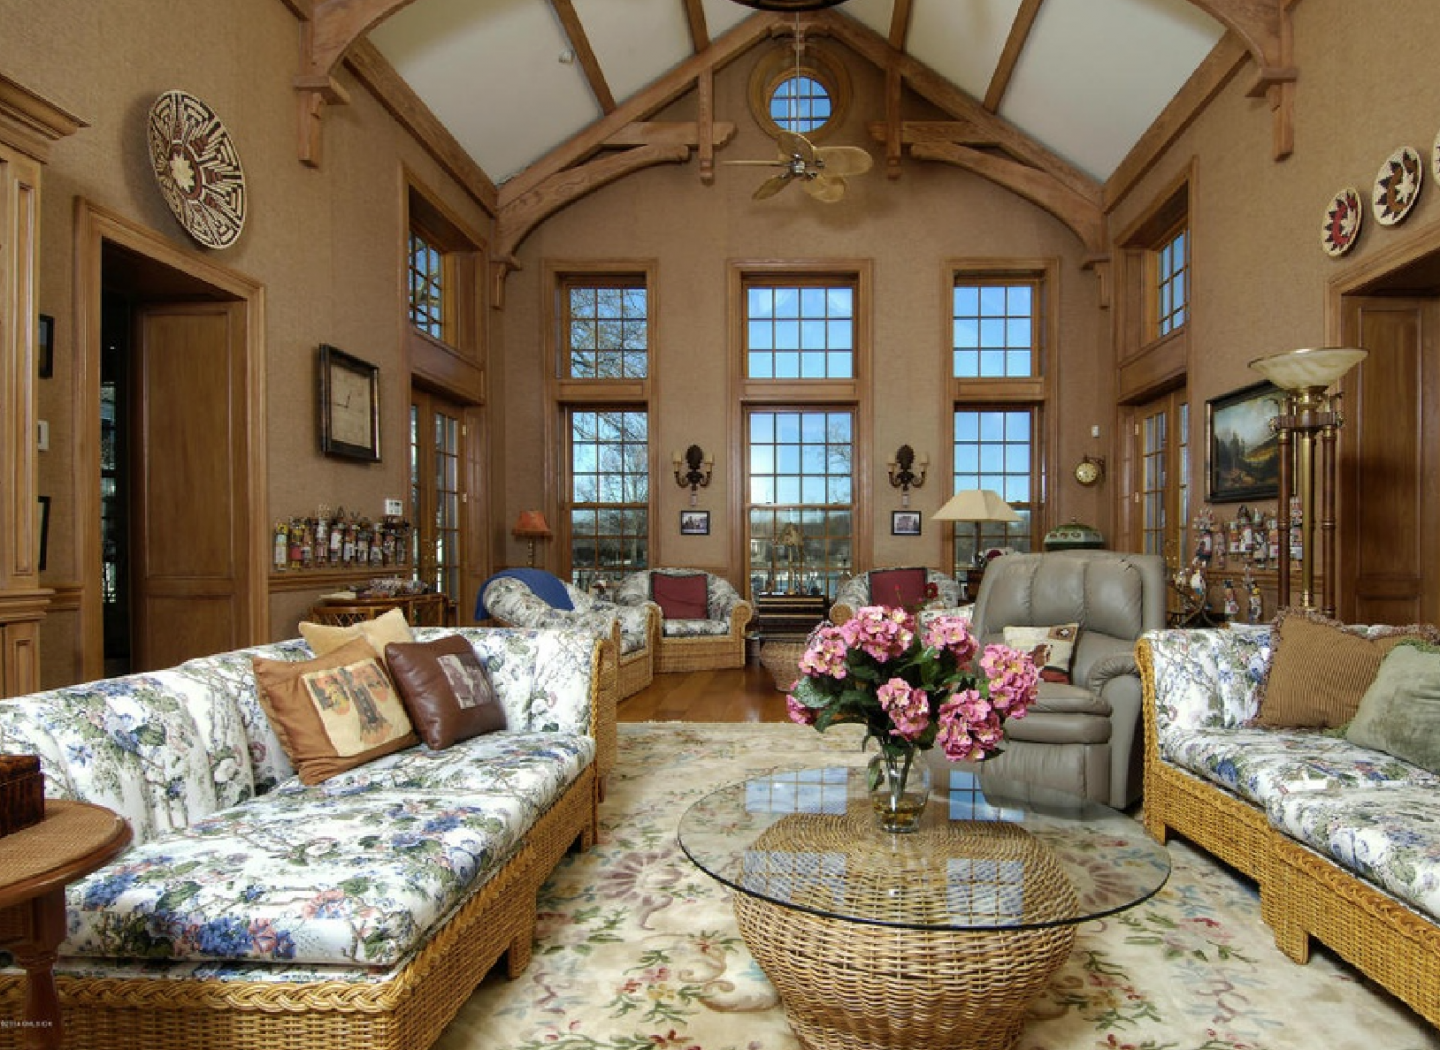 Great room that resembles a ski lodge setting